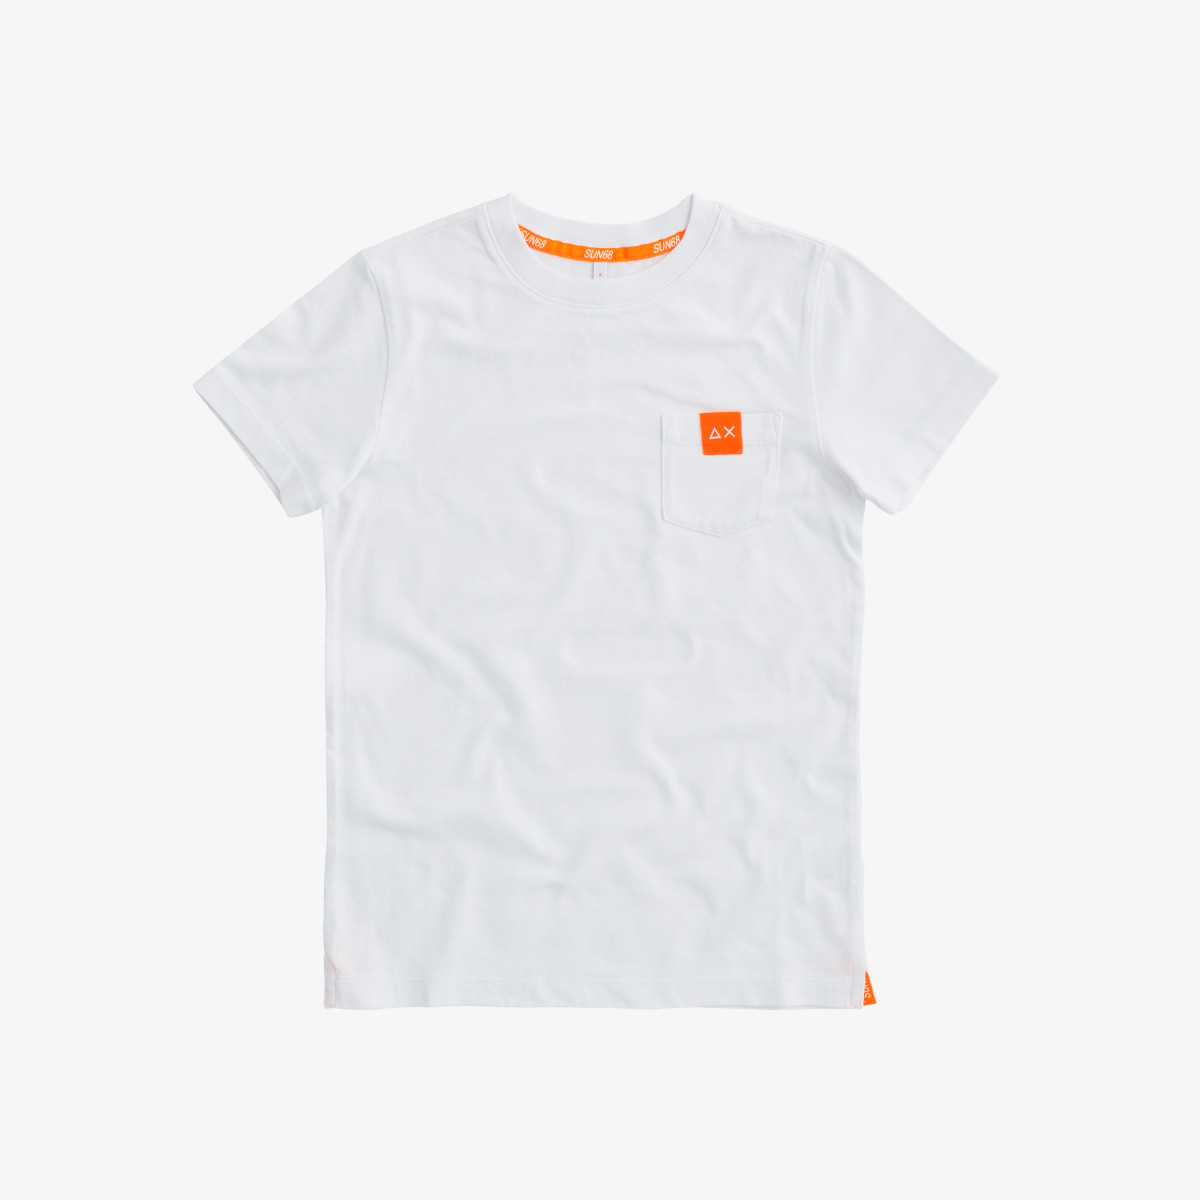 BOY'S T-SHIRT POCKET LOGO WHITE